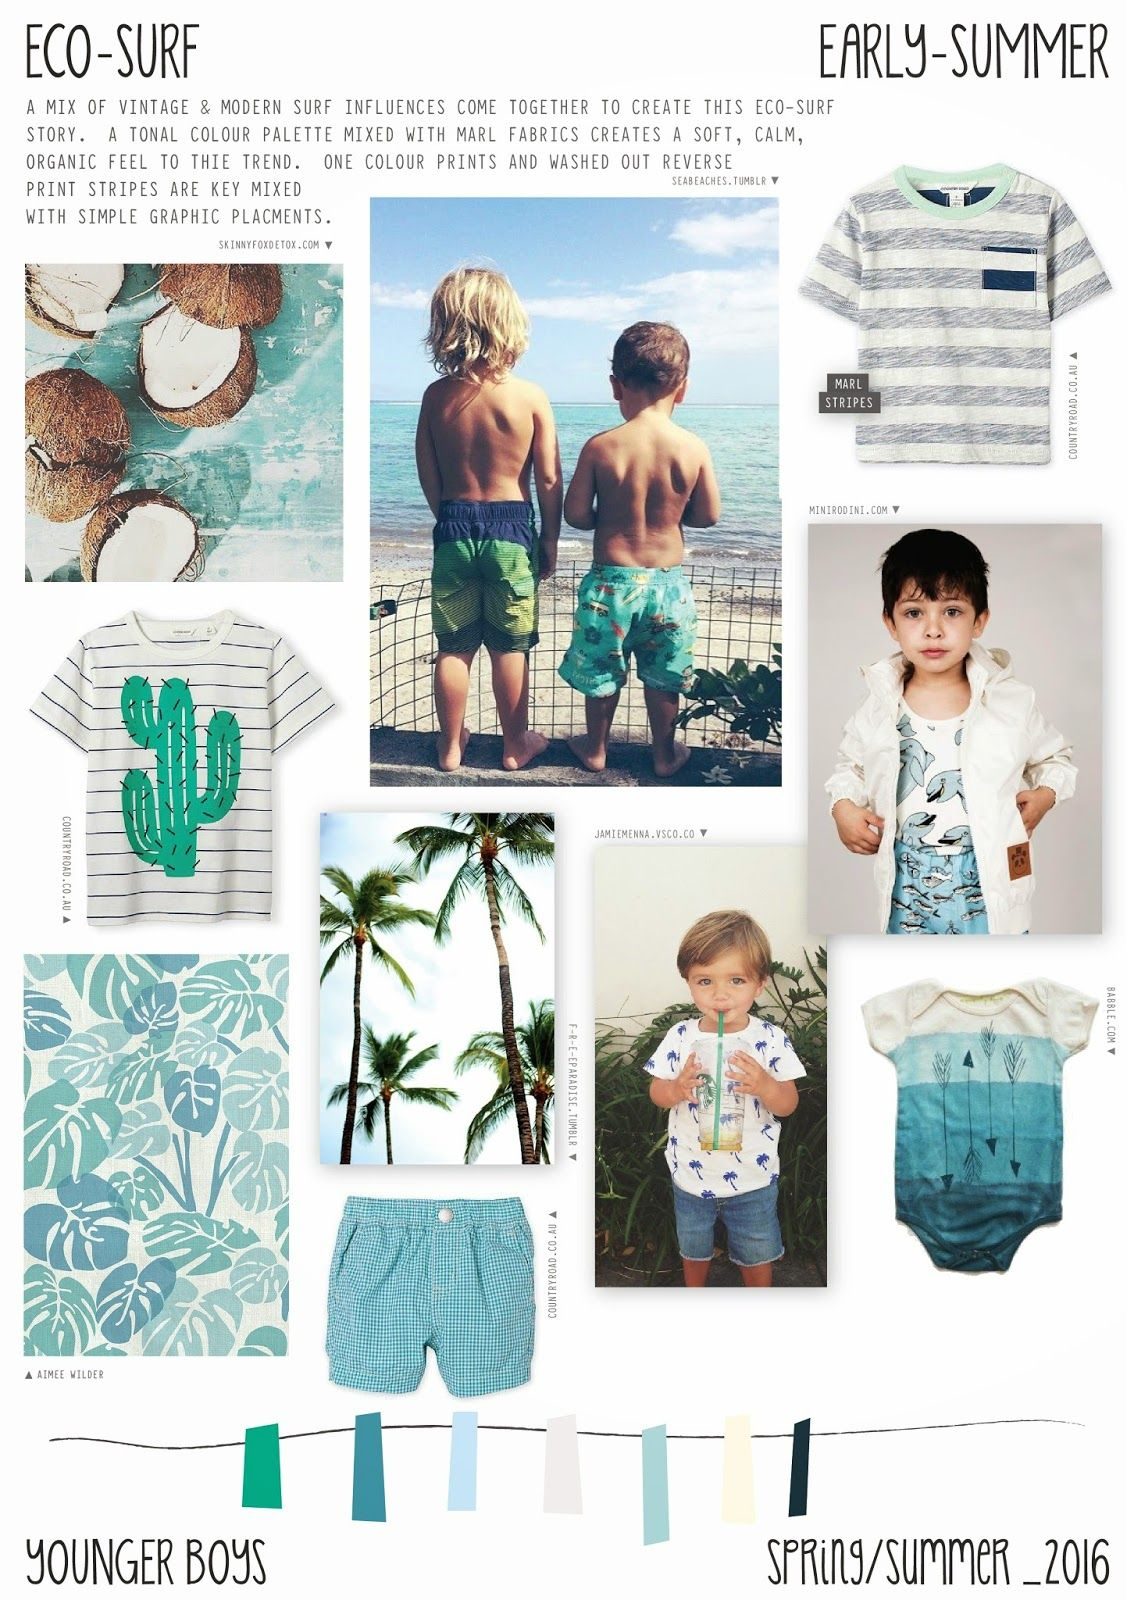 Spring/Summer 2016 - Younger Boys Fashion - Eco-Surf Trend ...